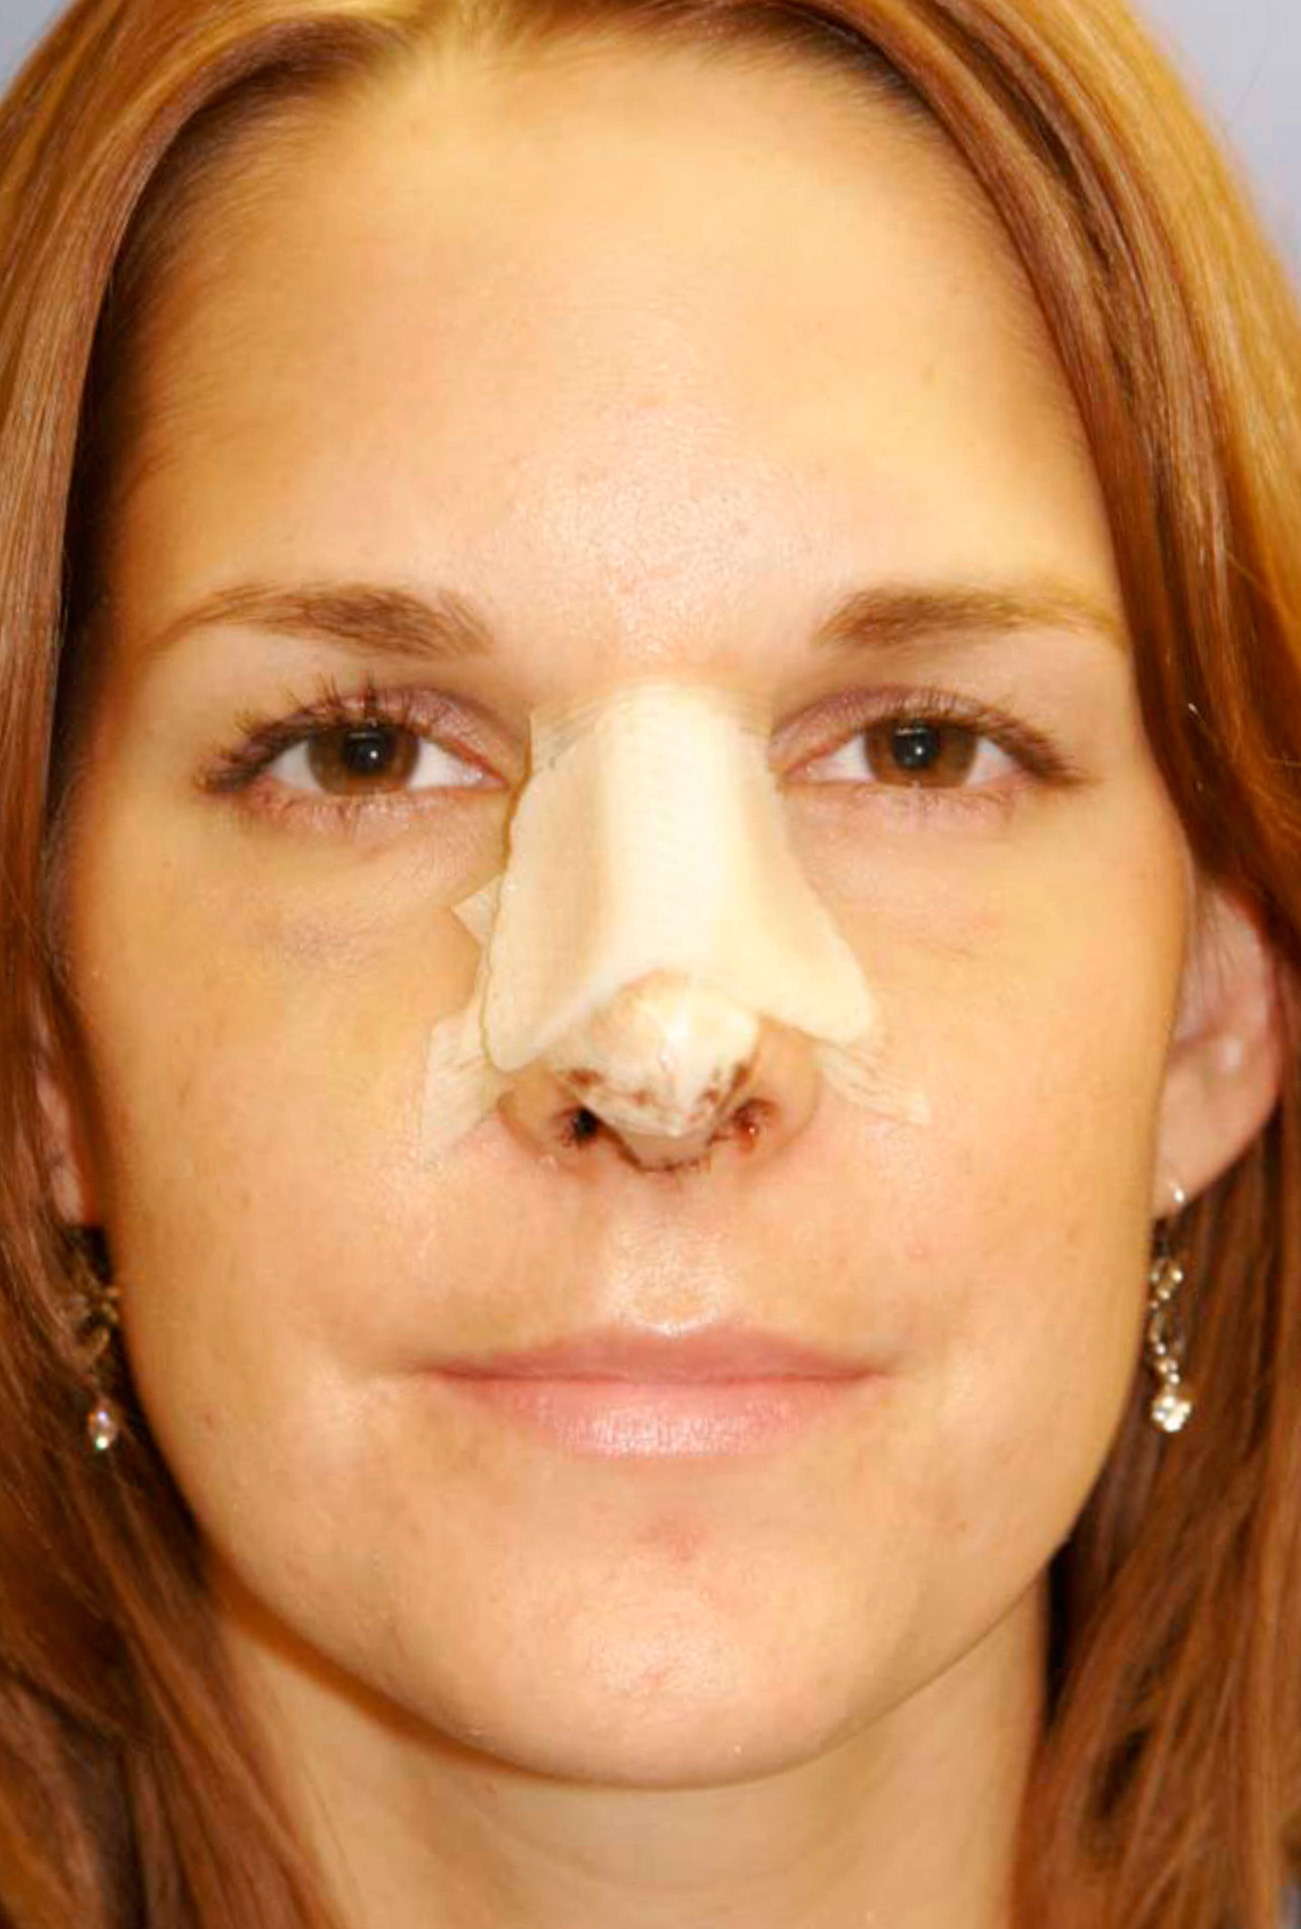 Rhinoplasty Cast